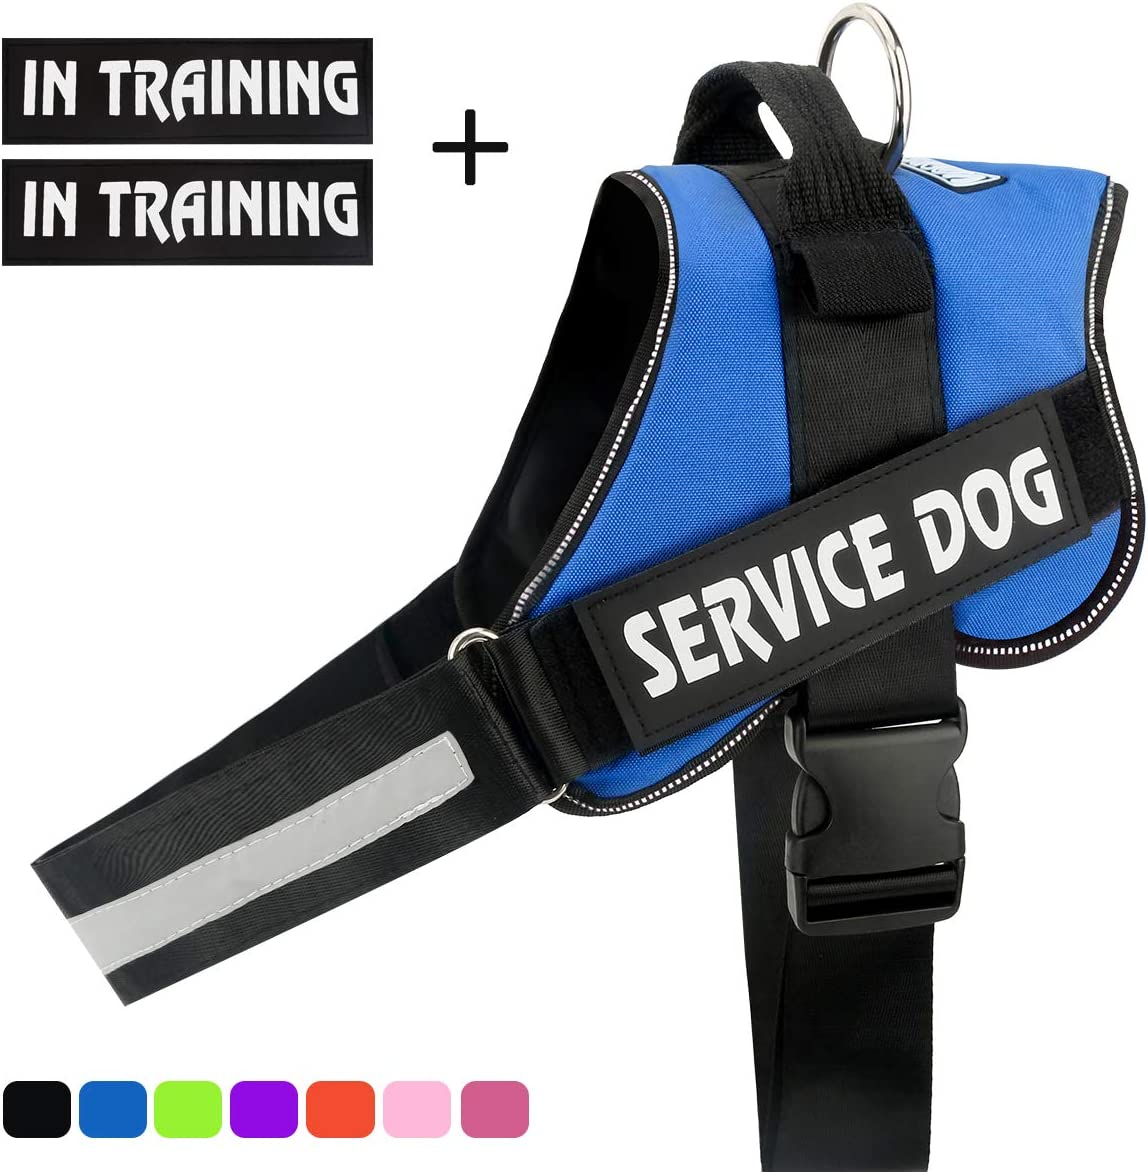 Outdoor Pet Vest Harness for Small Medium and Large Dogs Reflective Adjustable Dog Training Vest with Handle voopet No-Pull Dog Harness